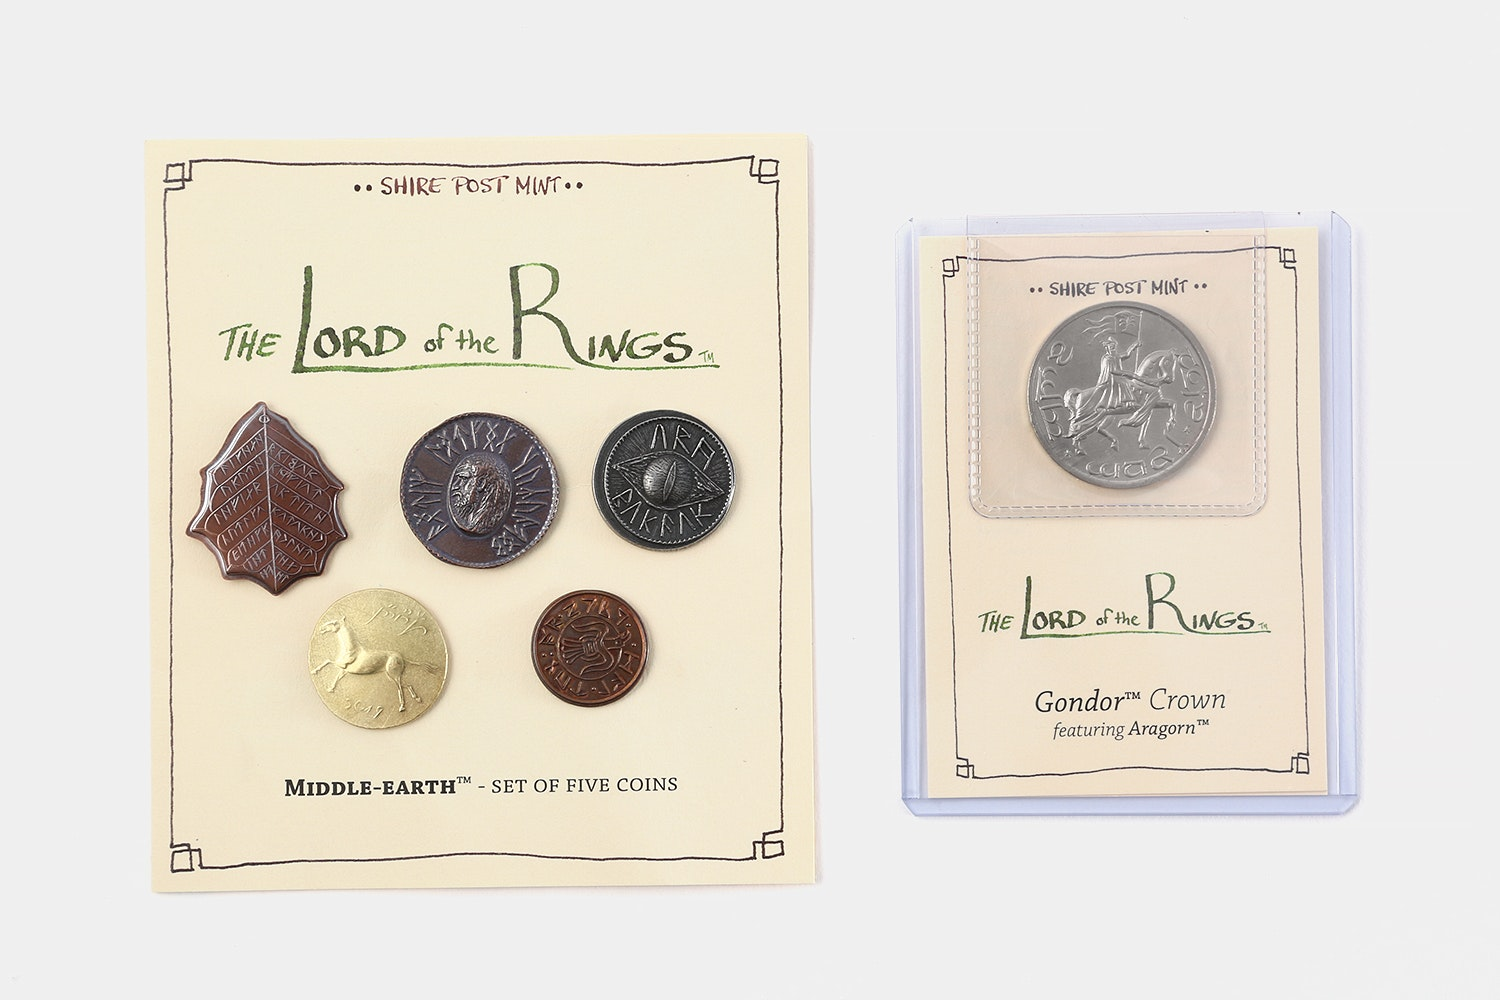 Lord of the Rings Collectible Coin Sets